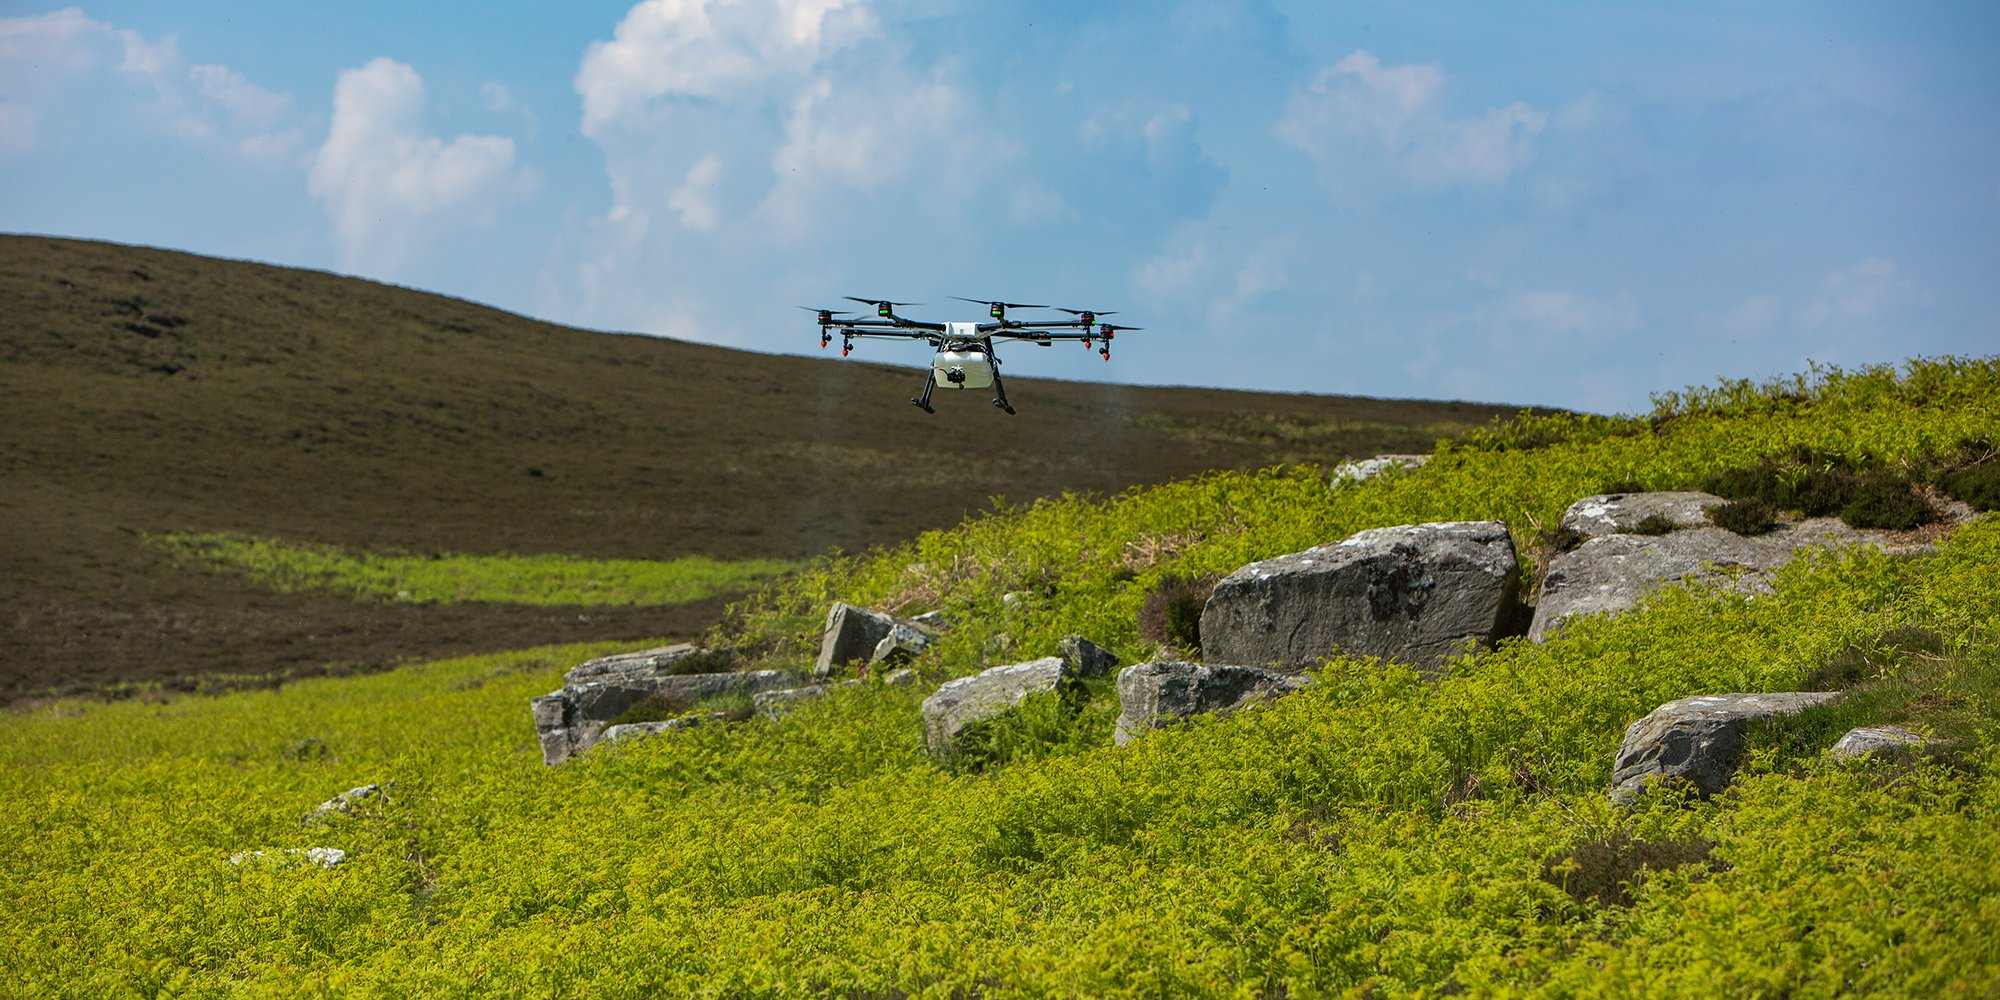 PA7 Aerial Spraying Certification for Drones